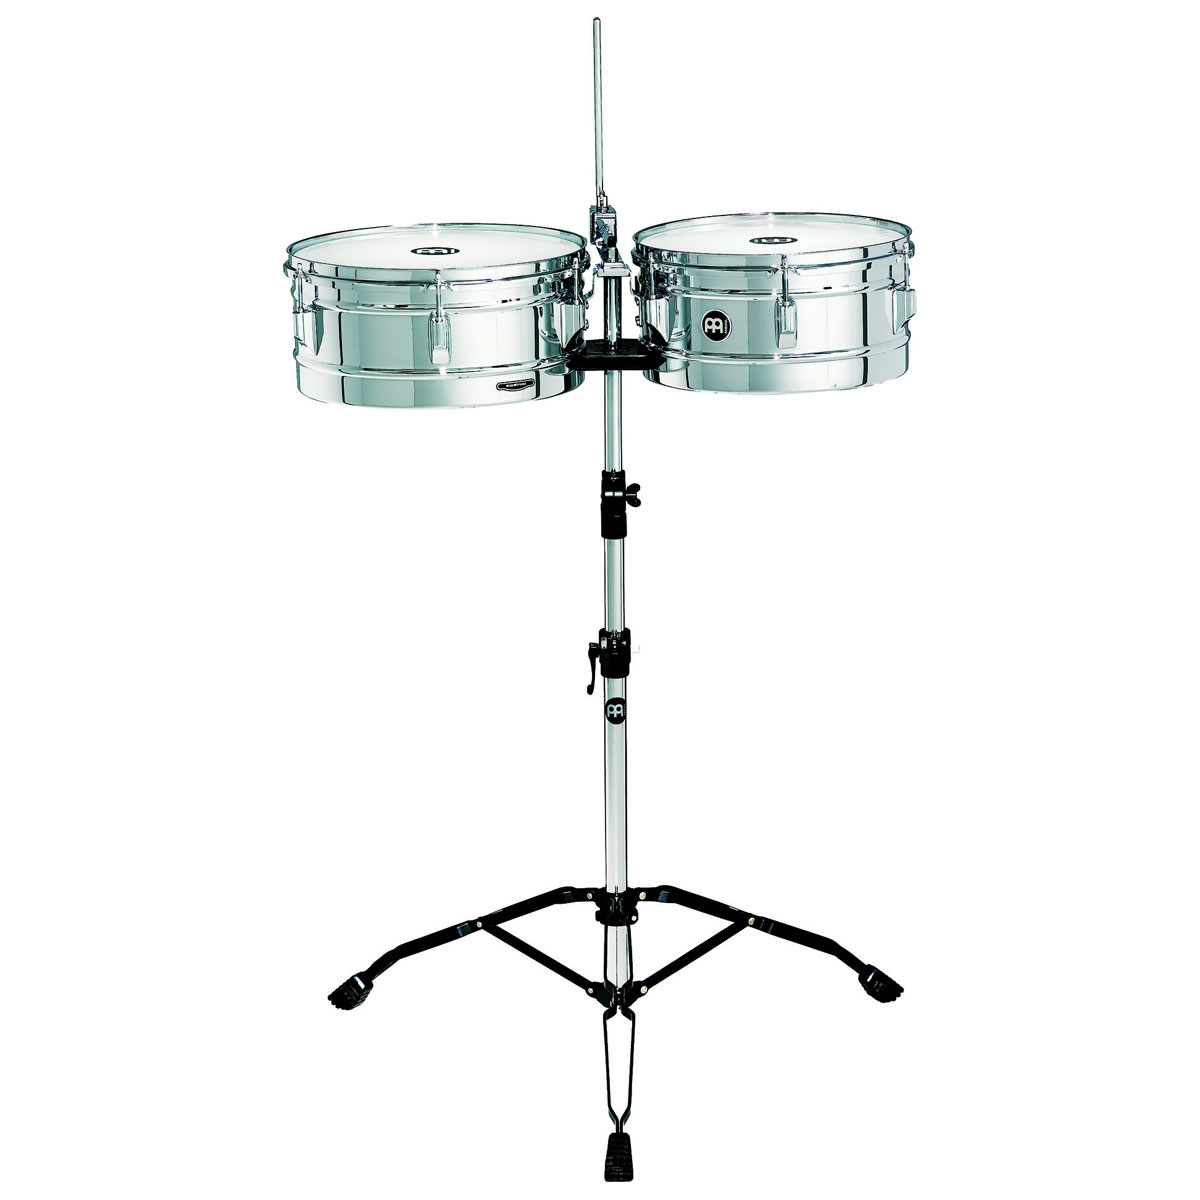 "Meinl 13/14"" Headliner Timbales with Stand"